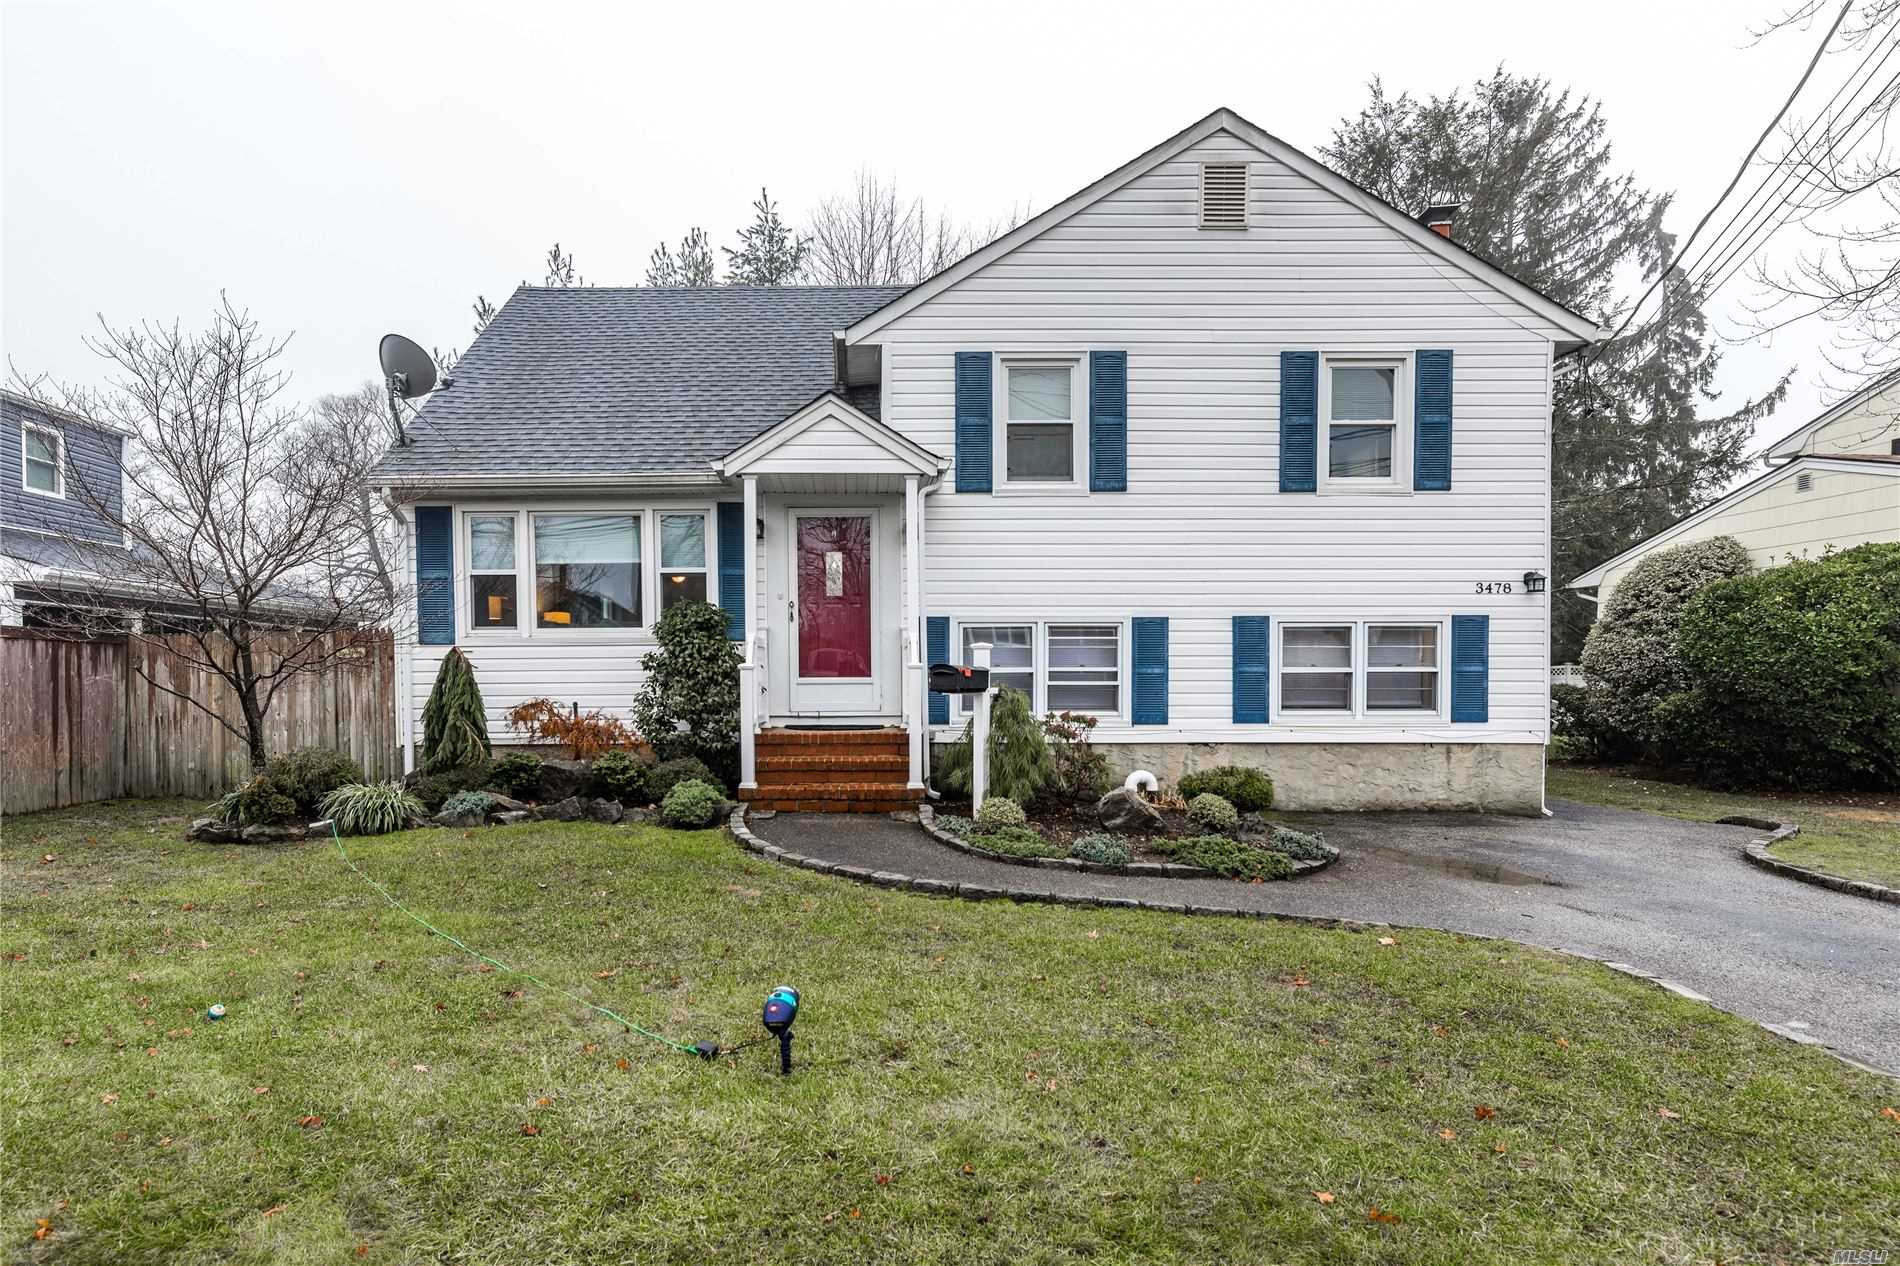 3478 Homestead Avenue, one of homes for sale in Wantagh